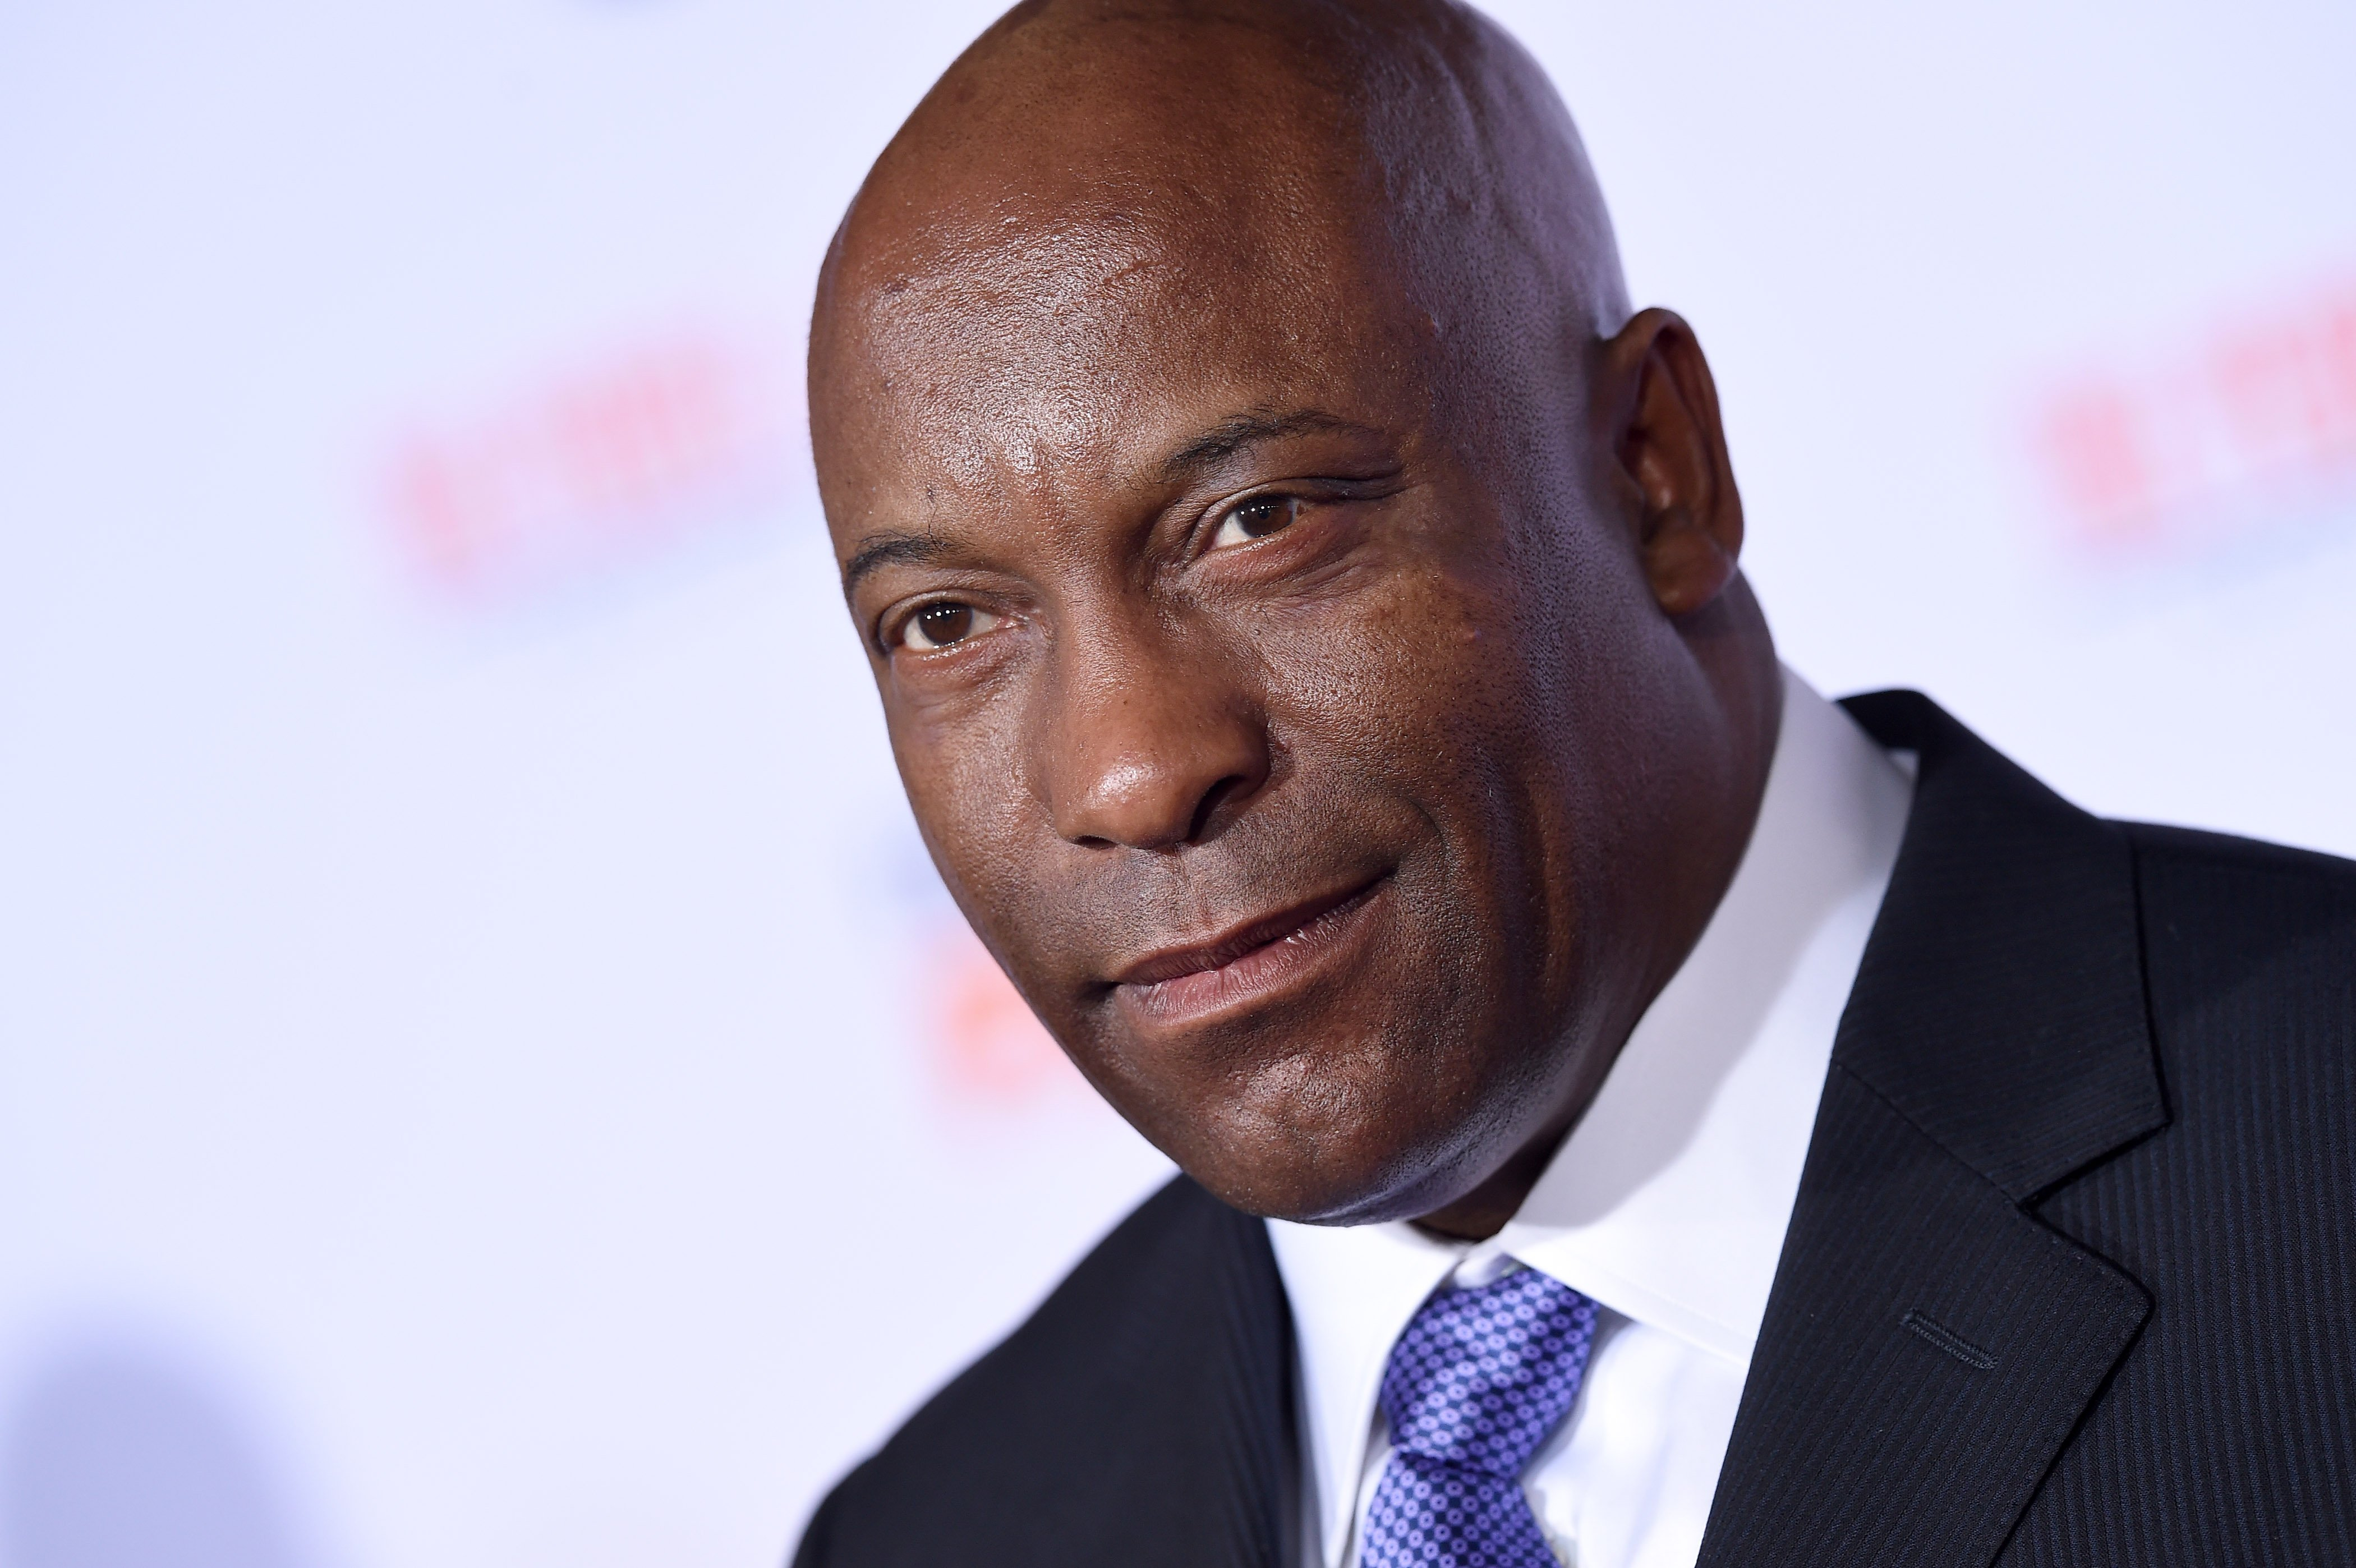 Director John Singleton arrives at the premiere of 'FX's 'American Crime Story - The People V. O.J. Simpson' at Westwood Village Theatre on January 27, 2016 | Photo: Getty Images